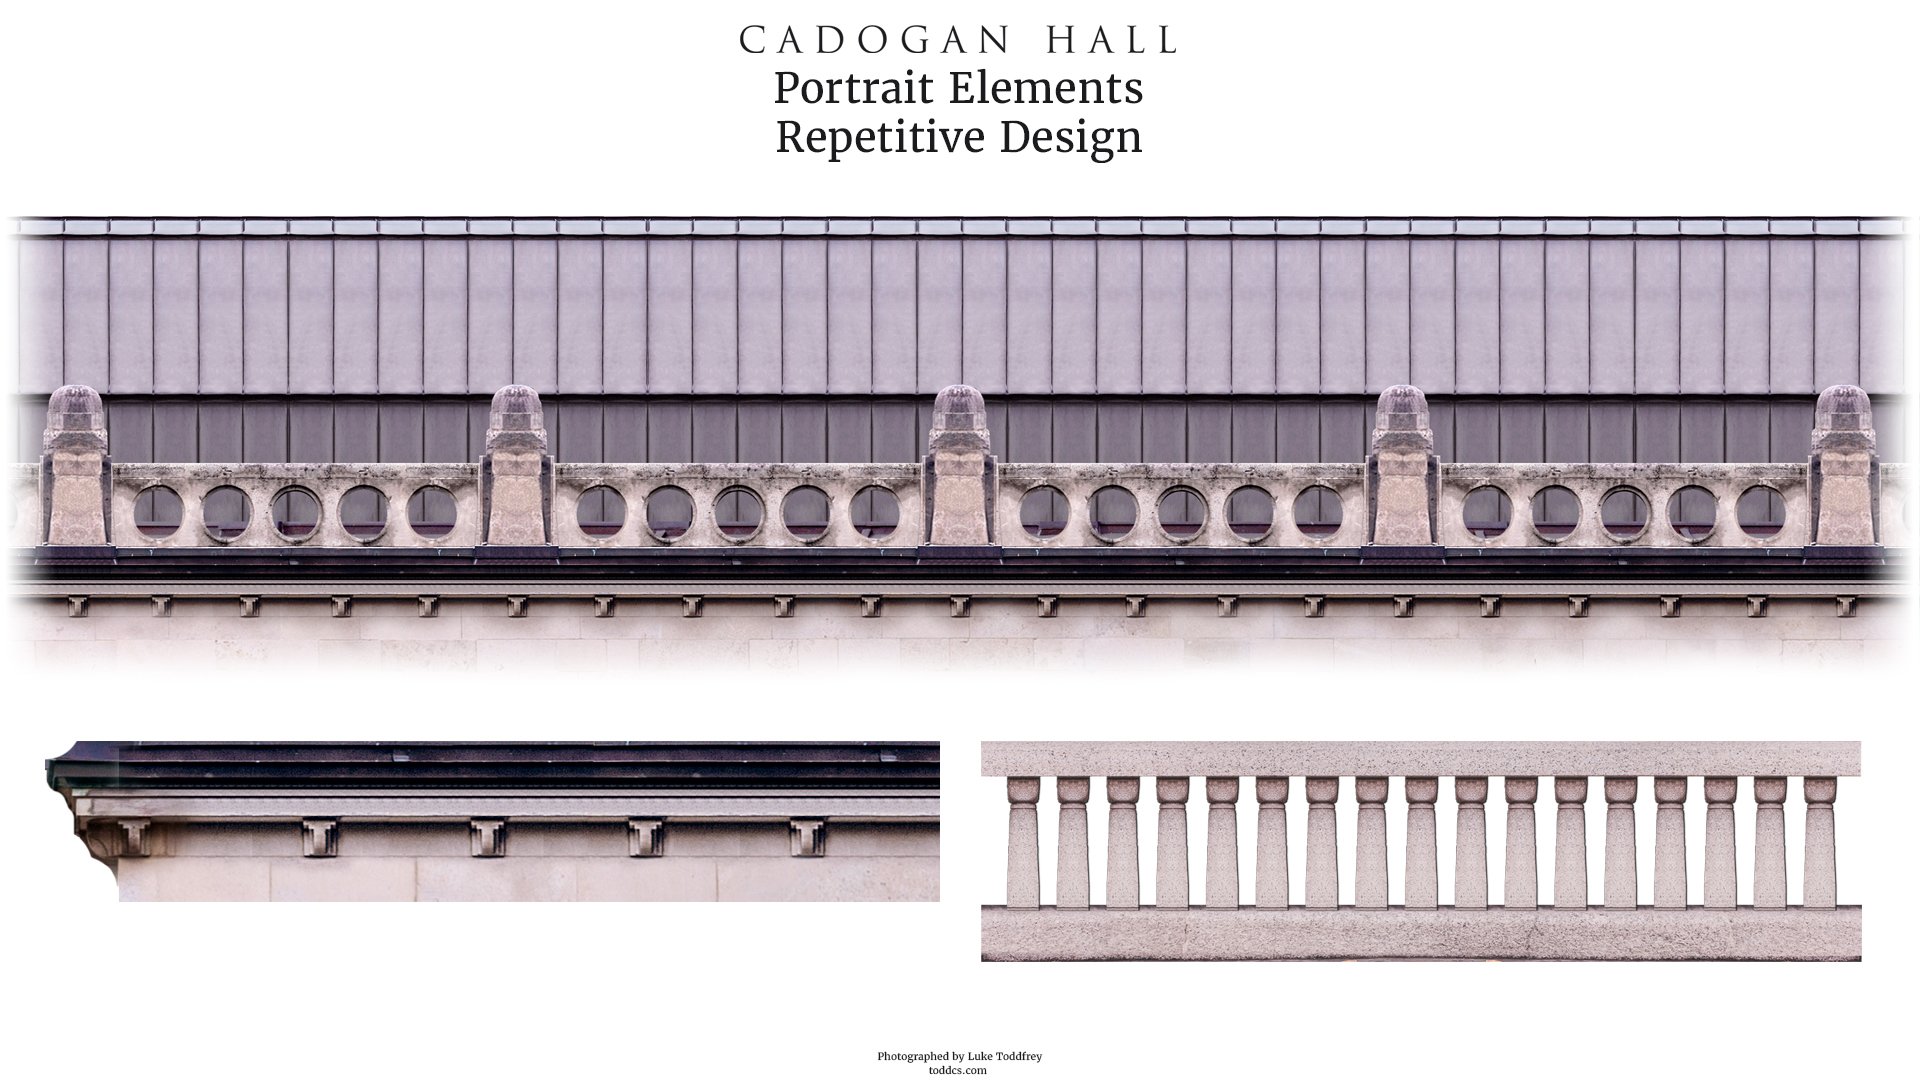 cadogan-hall---portrait_38365998735_o.jpg